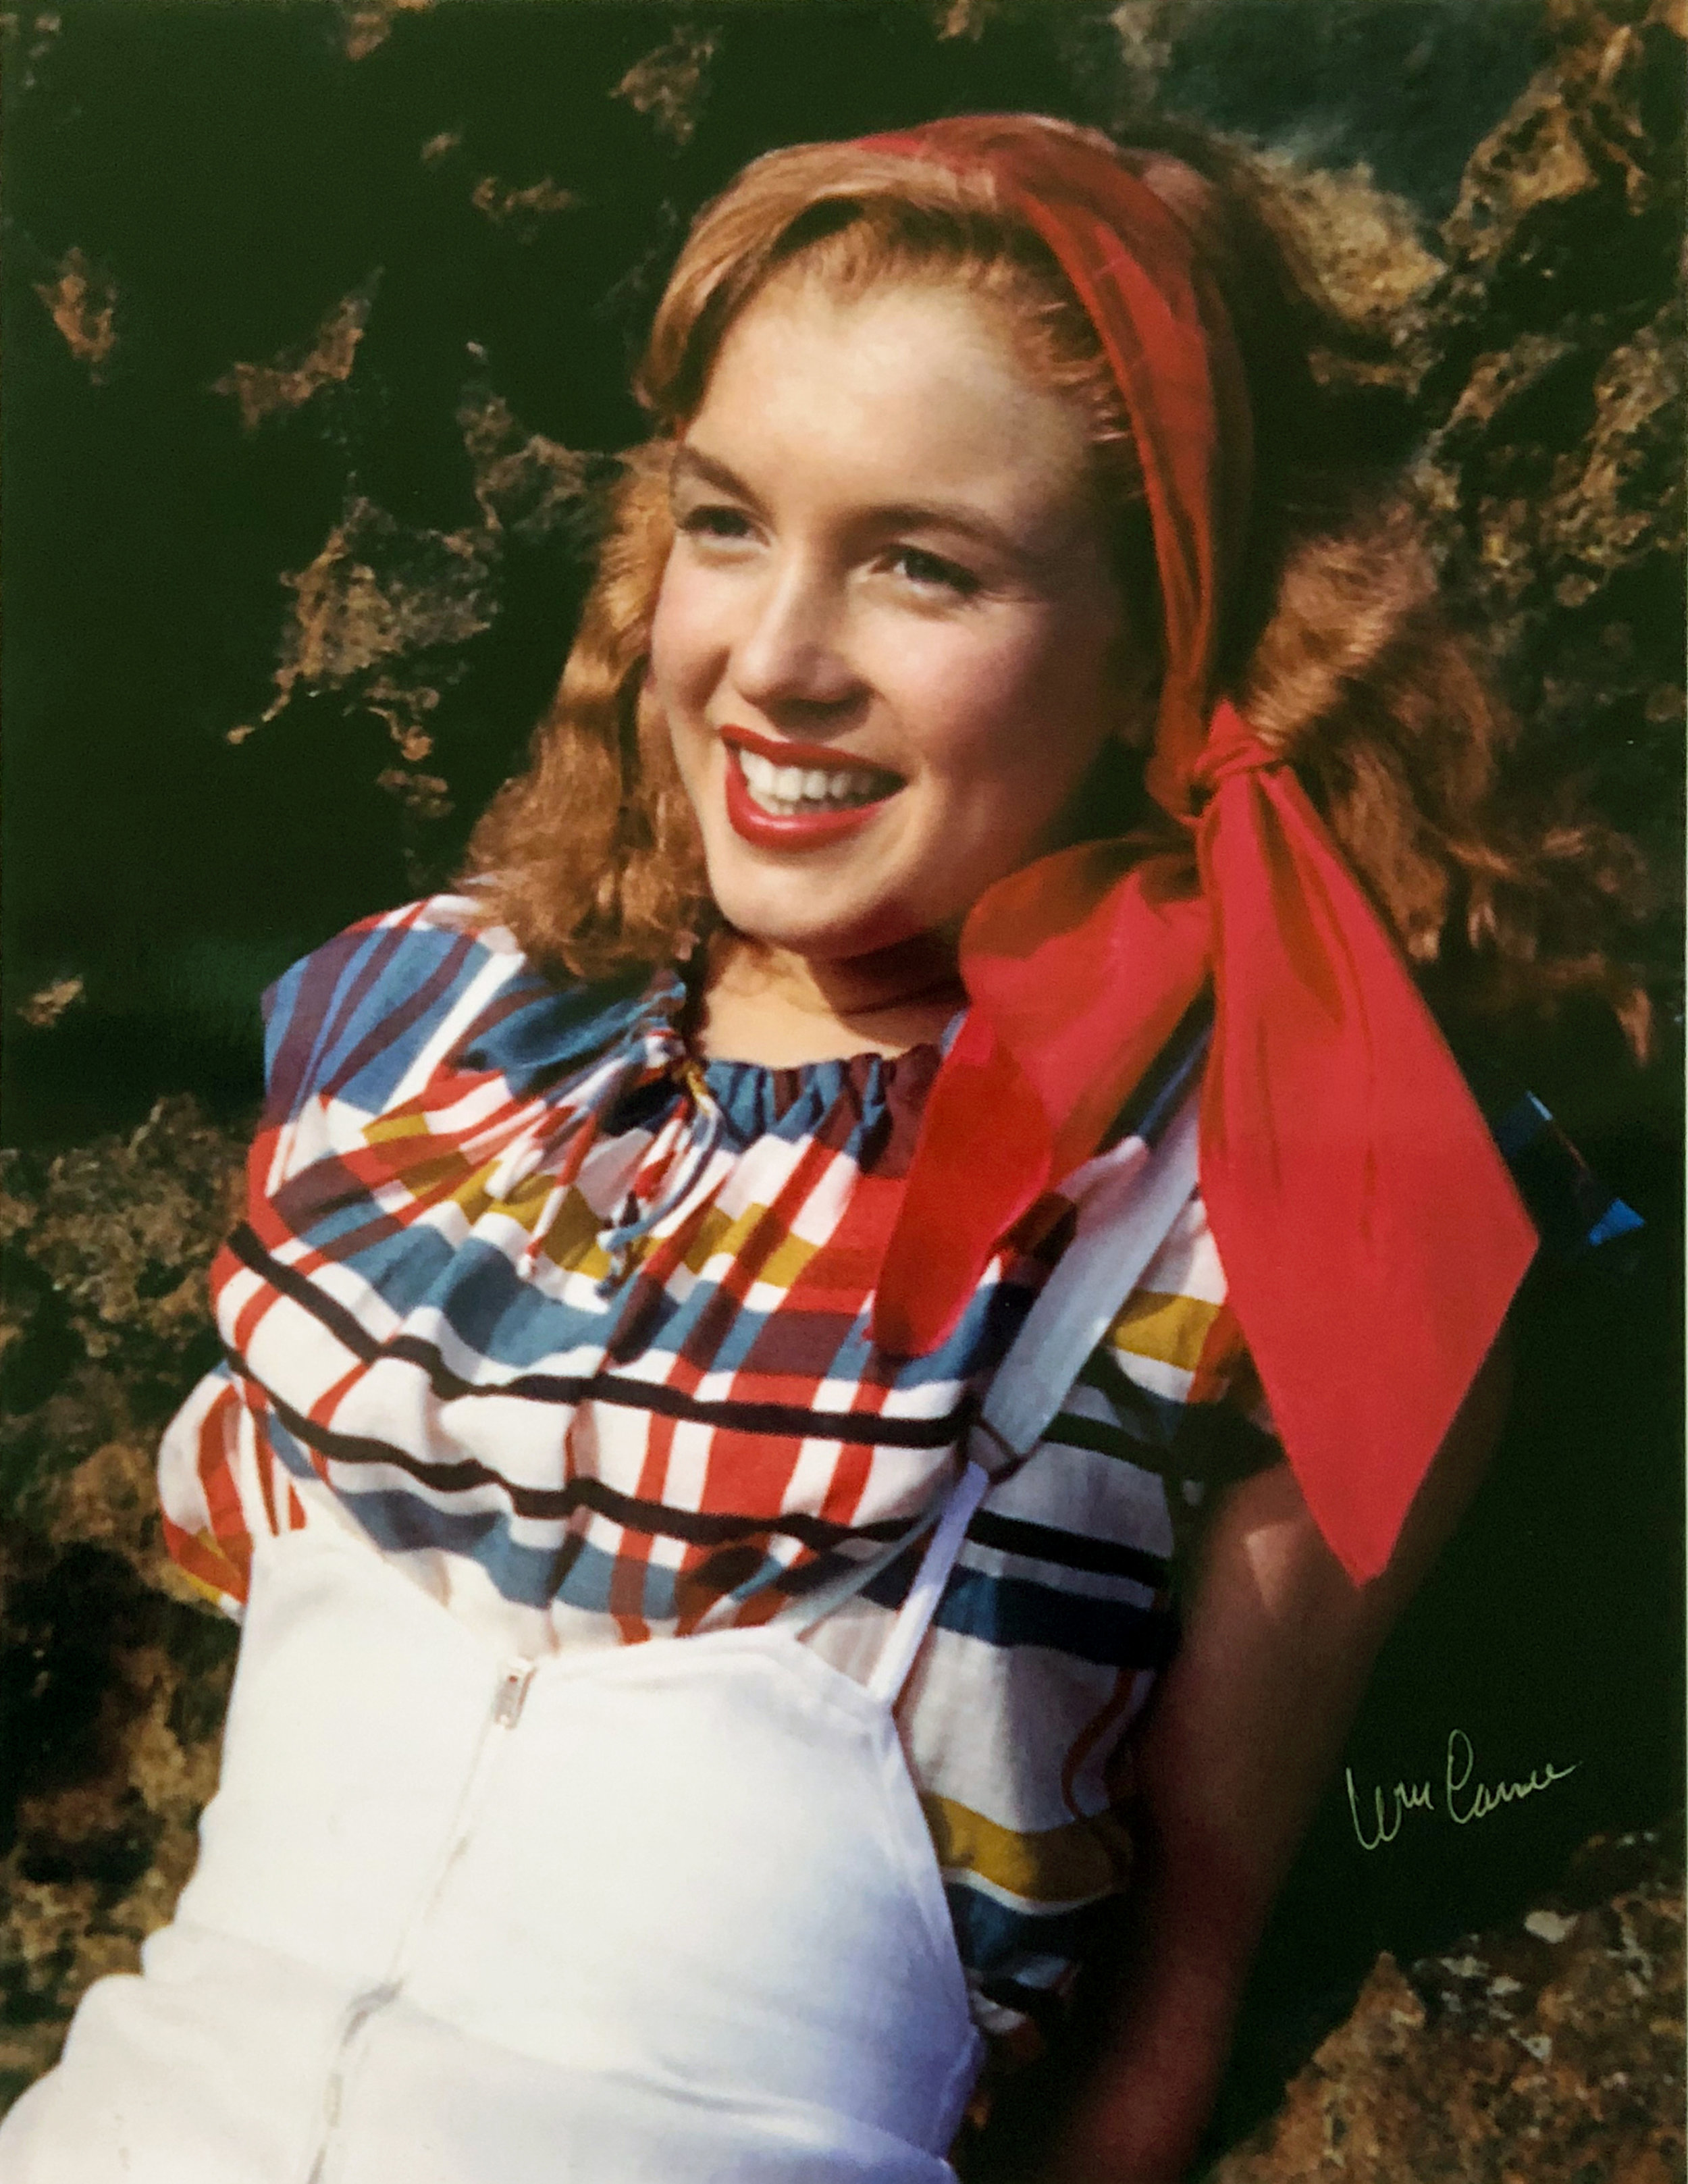 """© William Carroll """"Norma Jean"""" 1945 Printed 2010  Color Photograph on Photo Paper, Made From Original Negatives  Hand Signed Stamped And Numbered"""